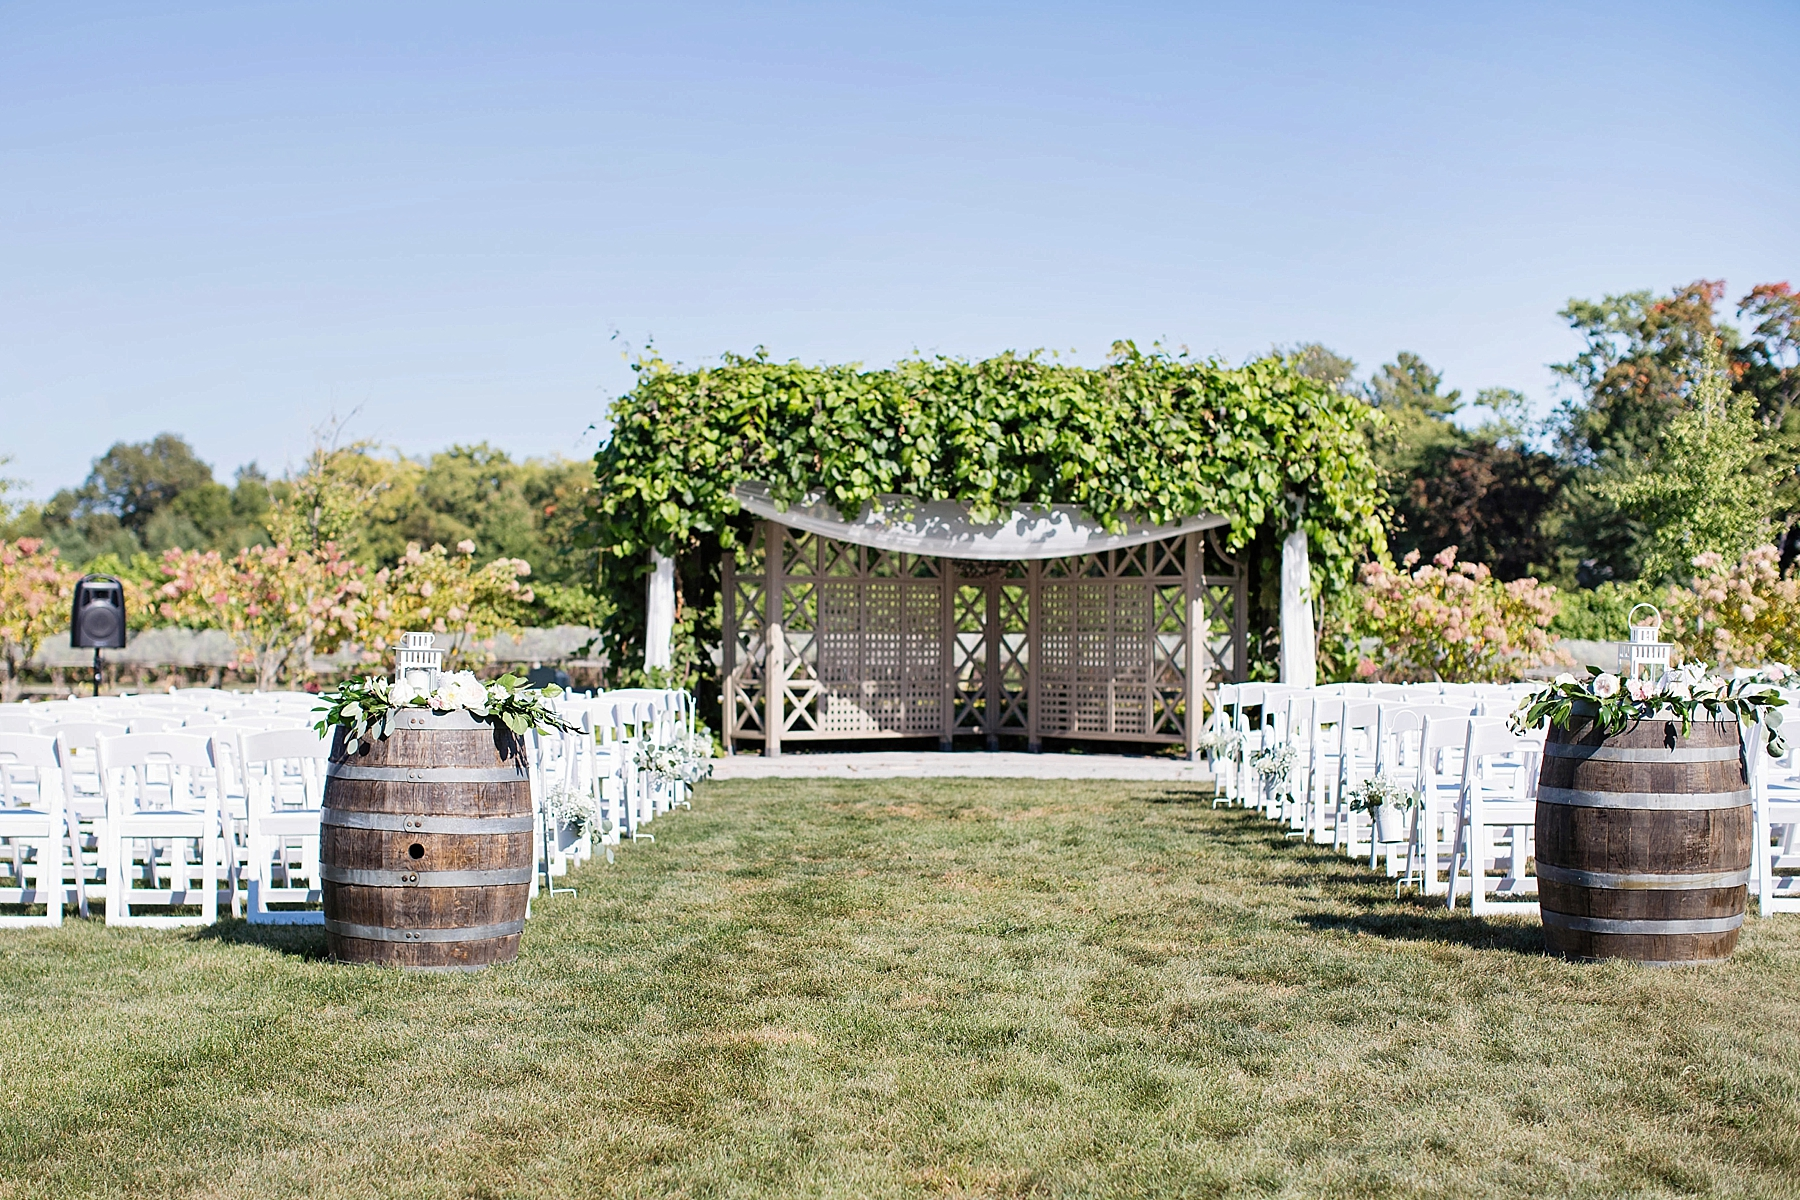 windsor-wedding-photographer-oxley-estate-winery-wedding-ontario-little-bird-event-planning-photography-niagara-on-the-lake-eryn-shea-photography_0057.jpg